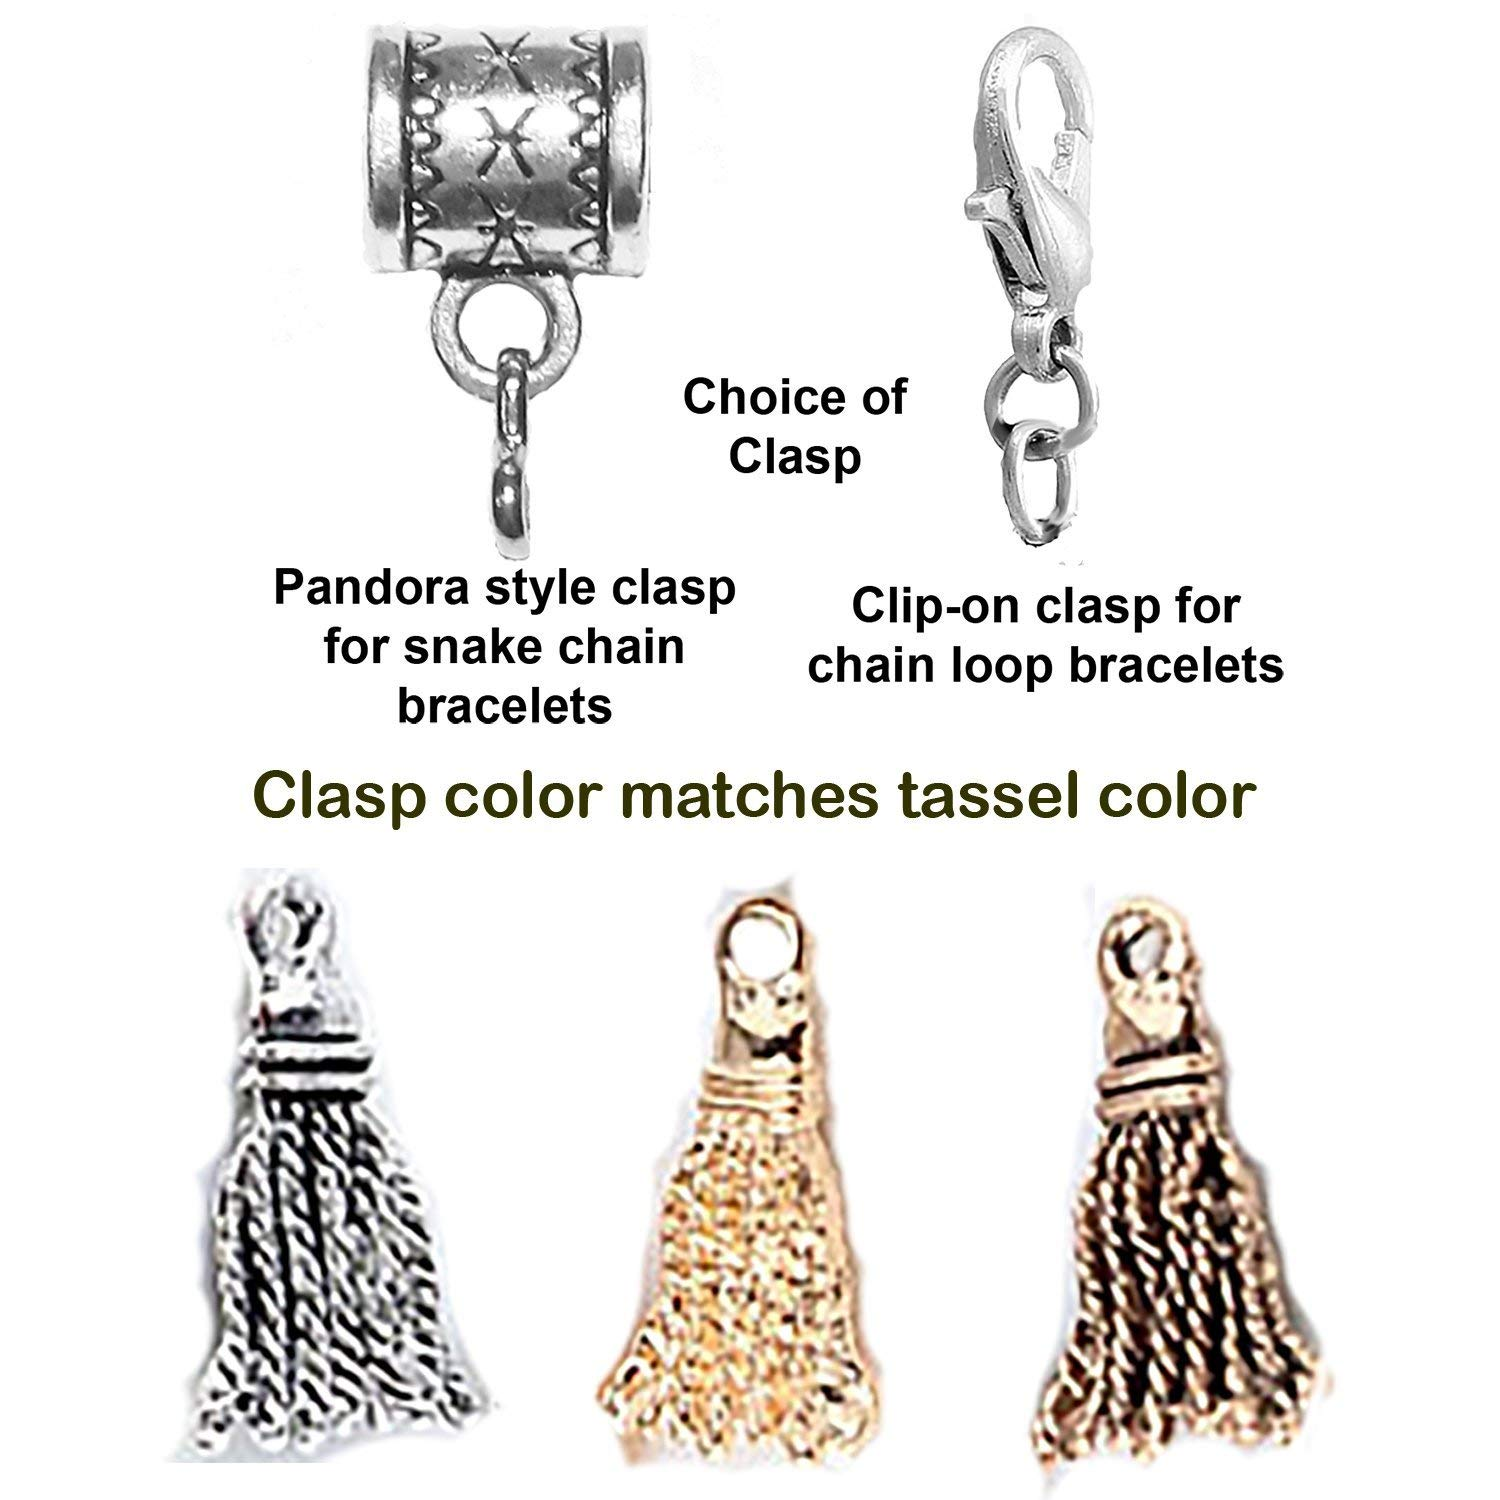 Graduation Tassel charm in silver, gold or bronze color by Mossy Cabin for modern large hole snake chain charm bracelet. Optional clip-on clasp available